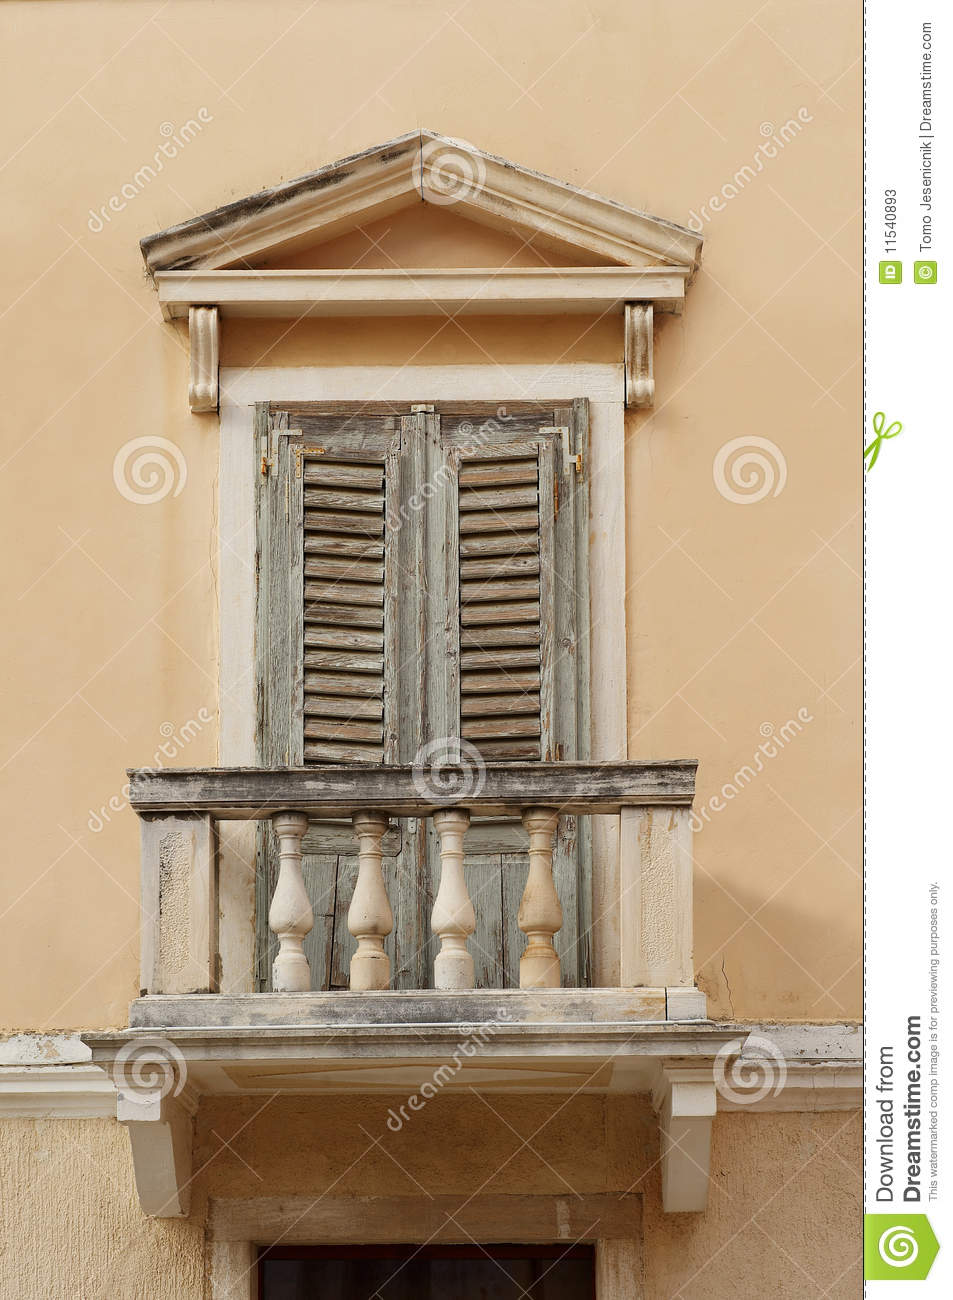 Old window balcony stock photos image 11540893 for Balcony window